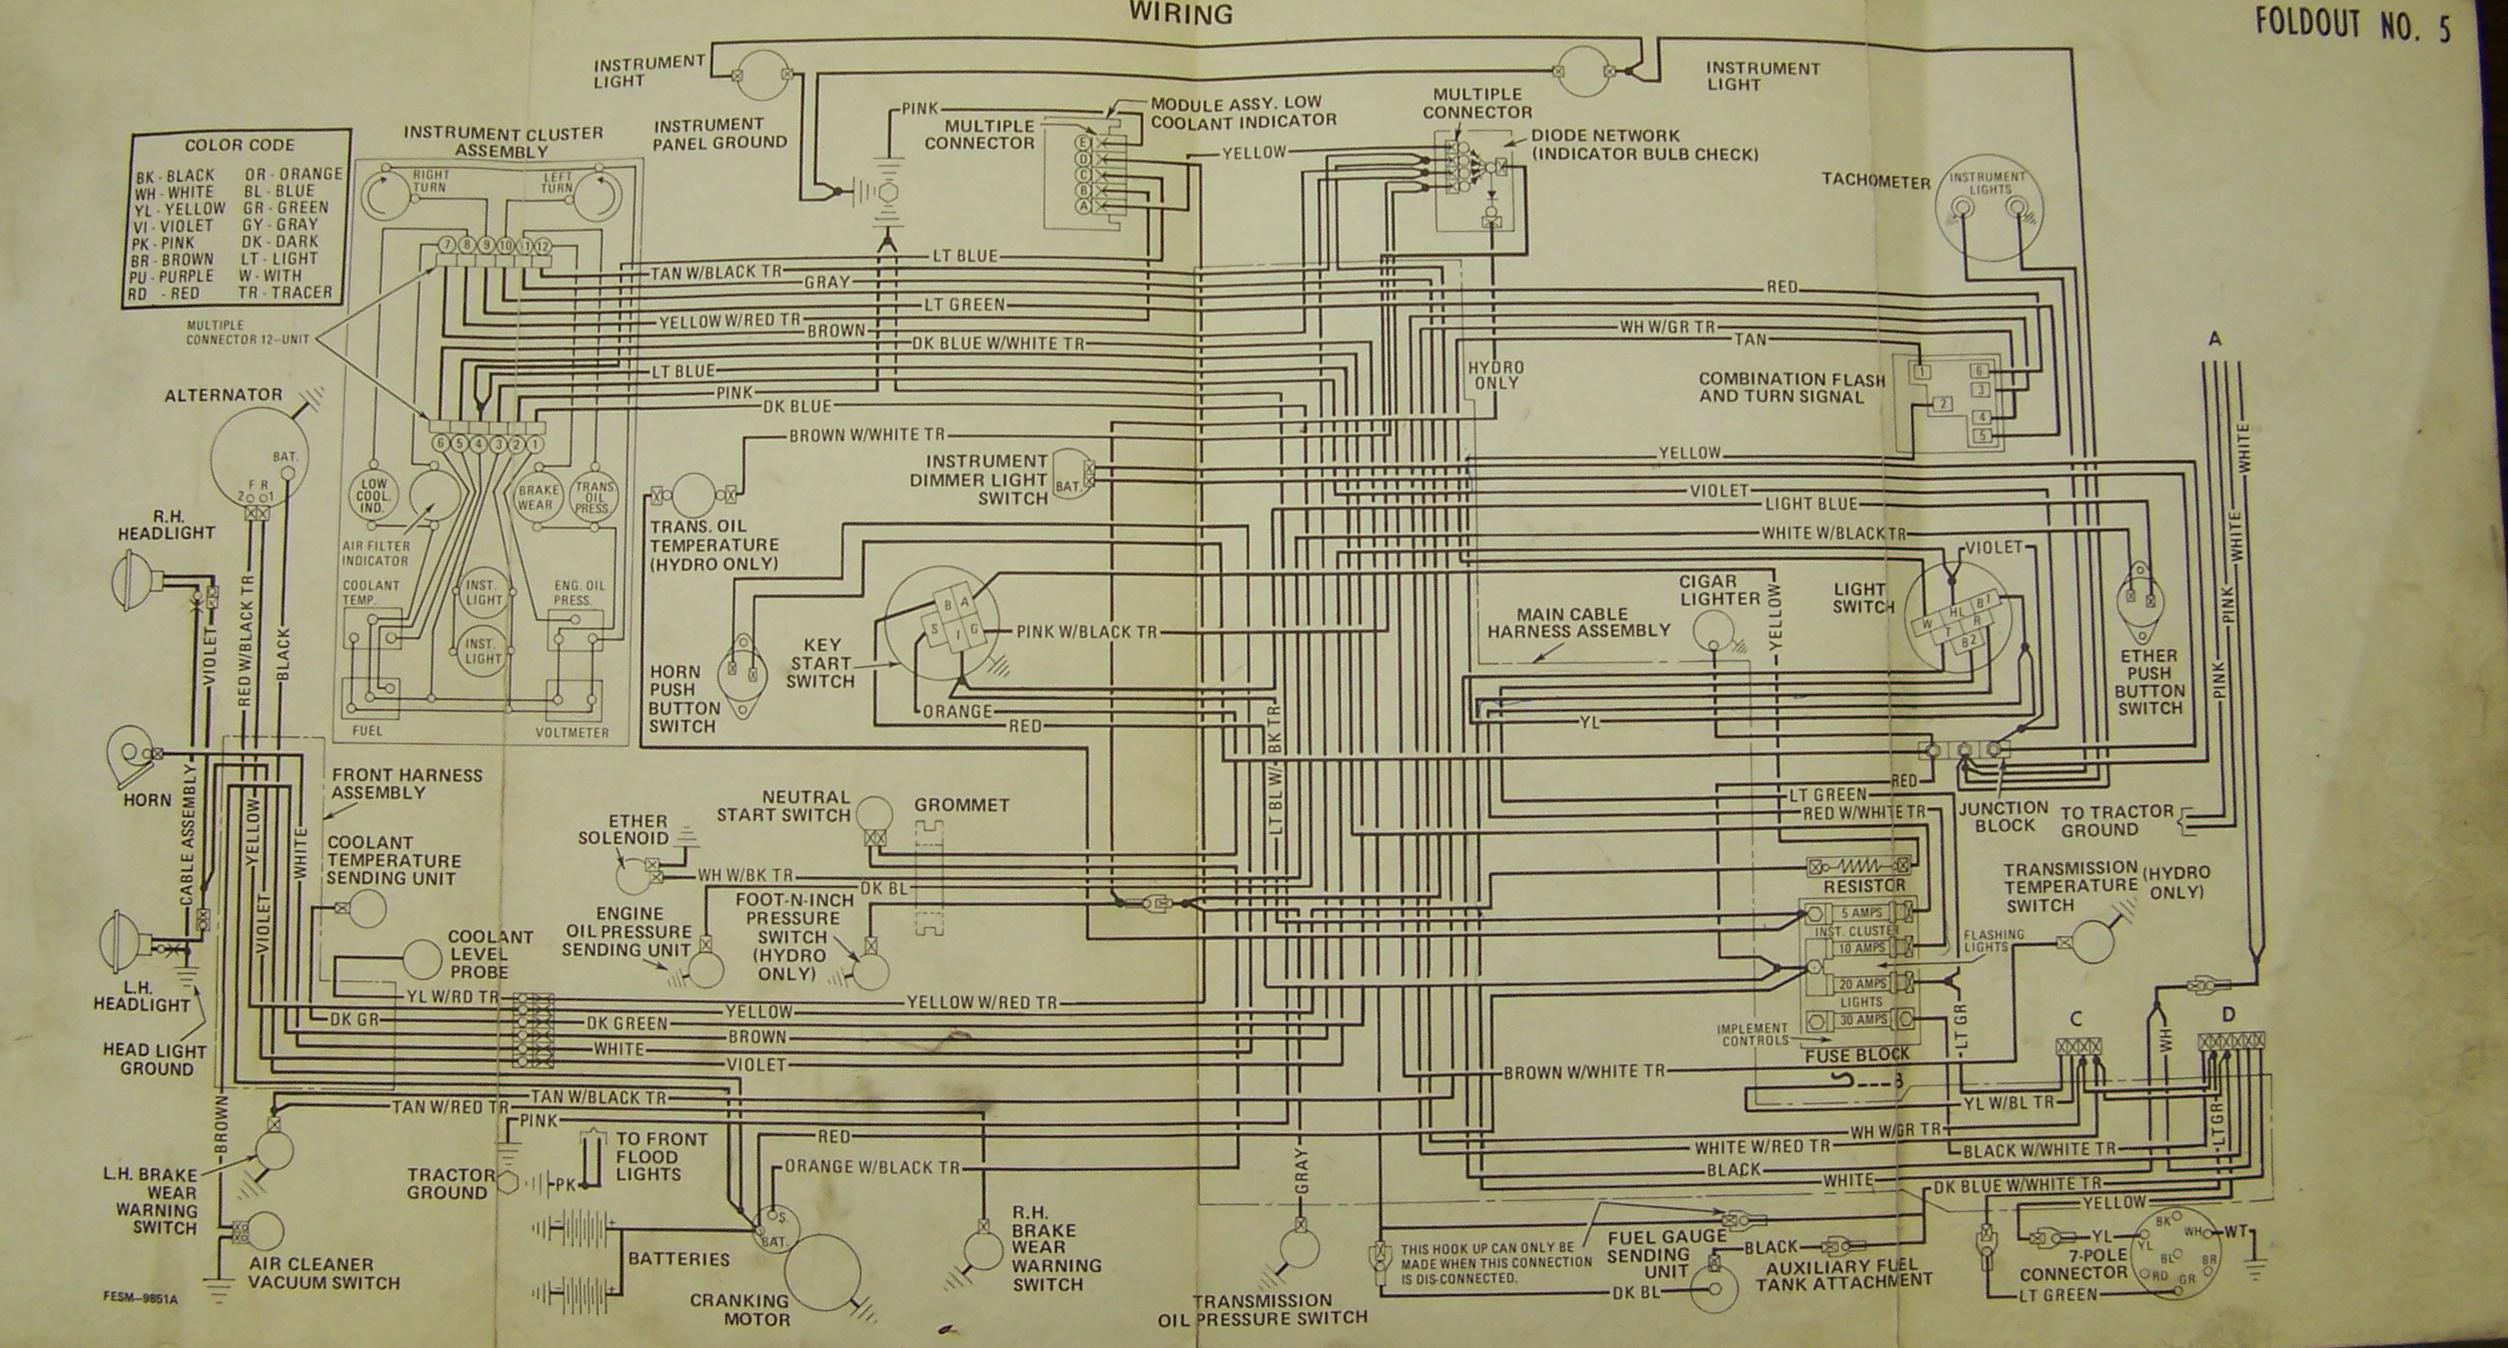 carter gruenewald co inc ih farmall tractor electrical wiring rh cngco com ih 1086 cab wiring diagram international harvester 1086 wiring diagram